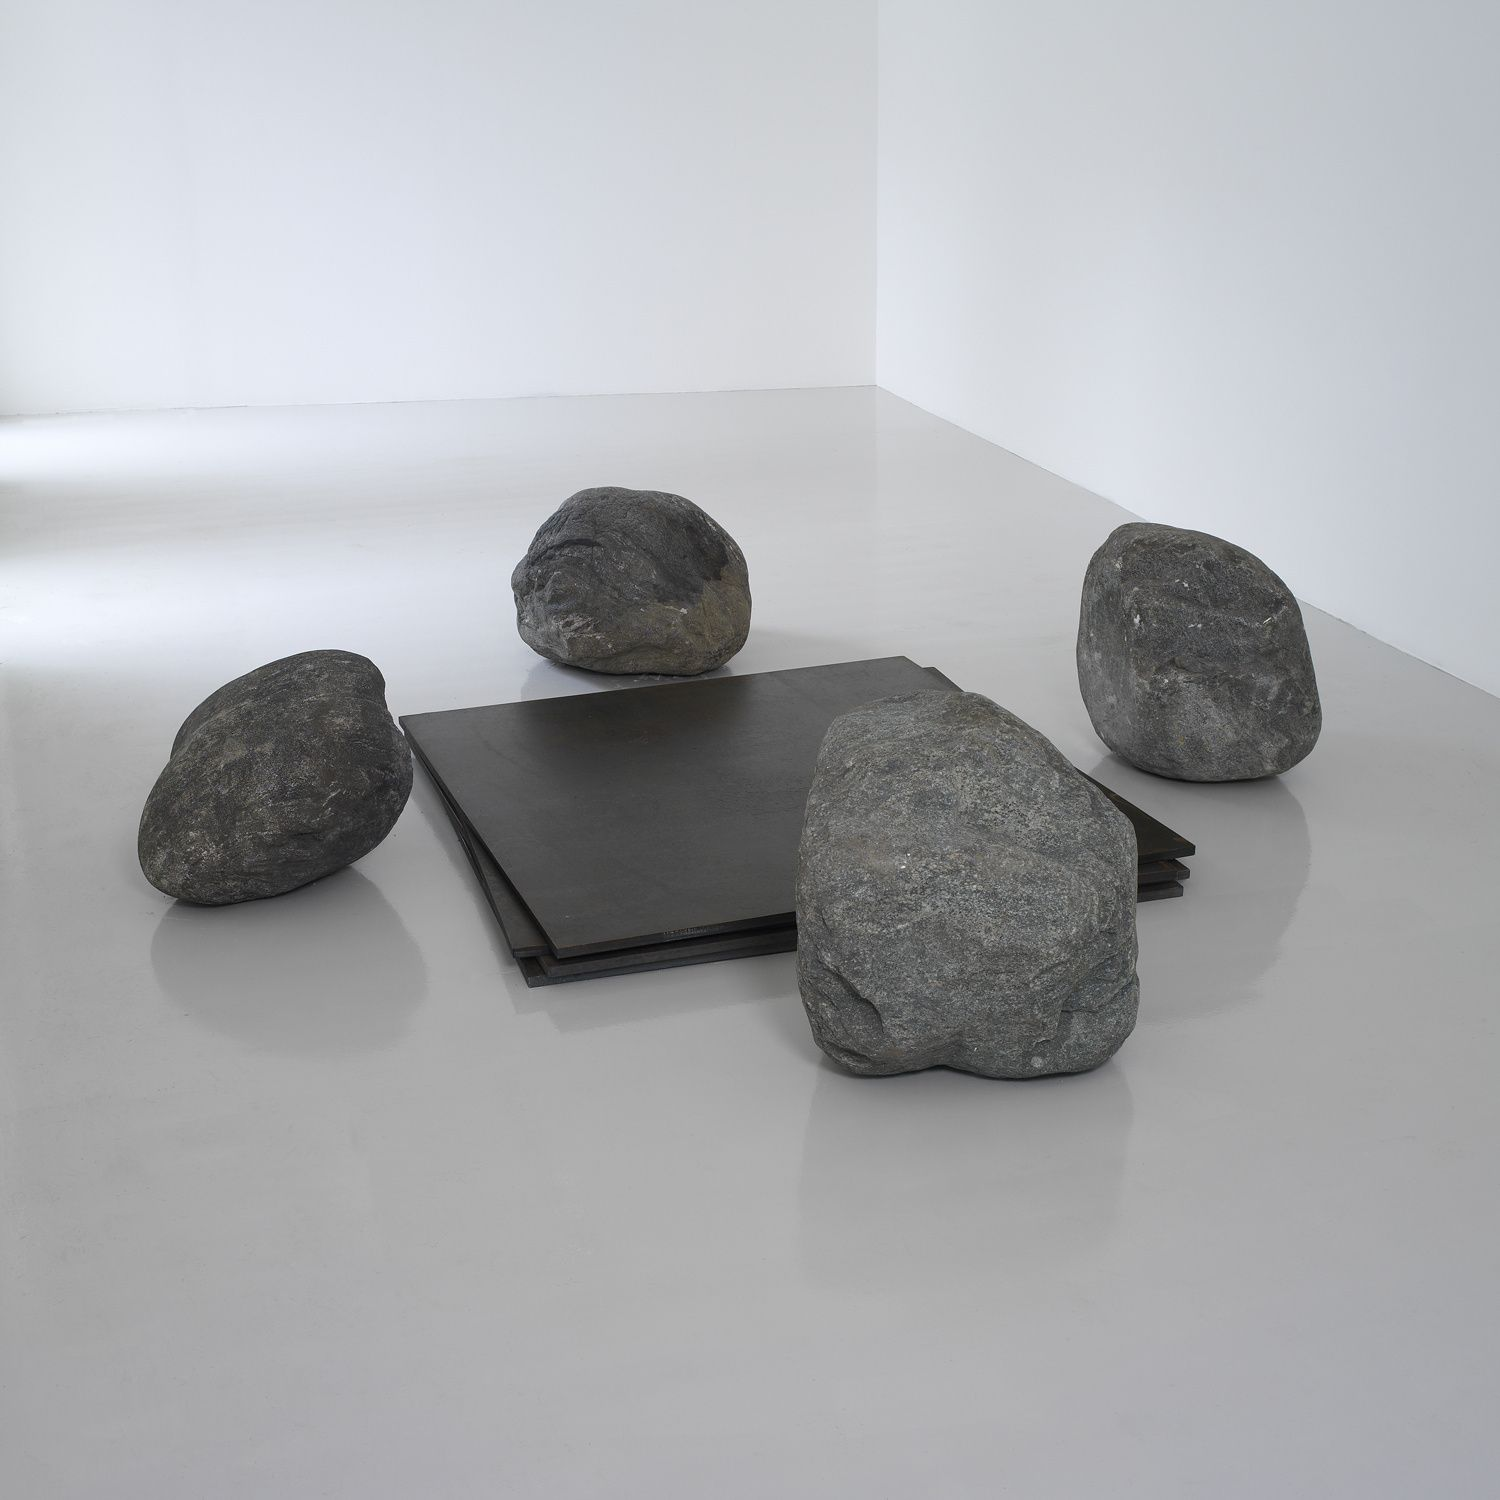 Lee Ufan, Relatum - Discussion, 2003. Four iron plates and four stones.